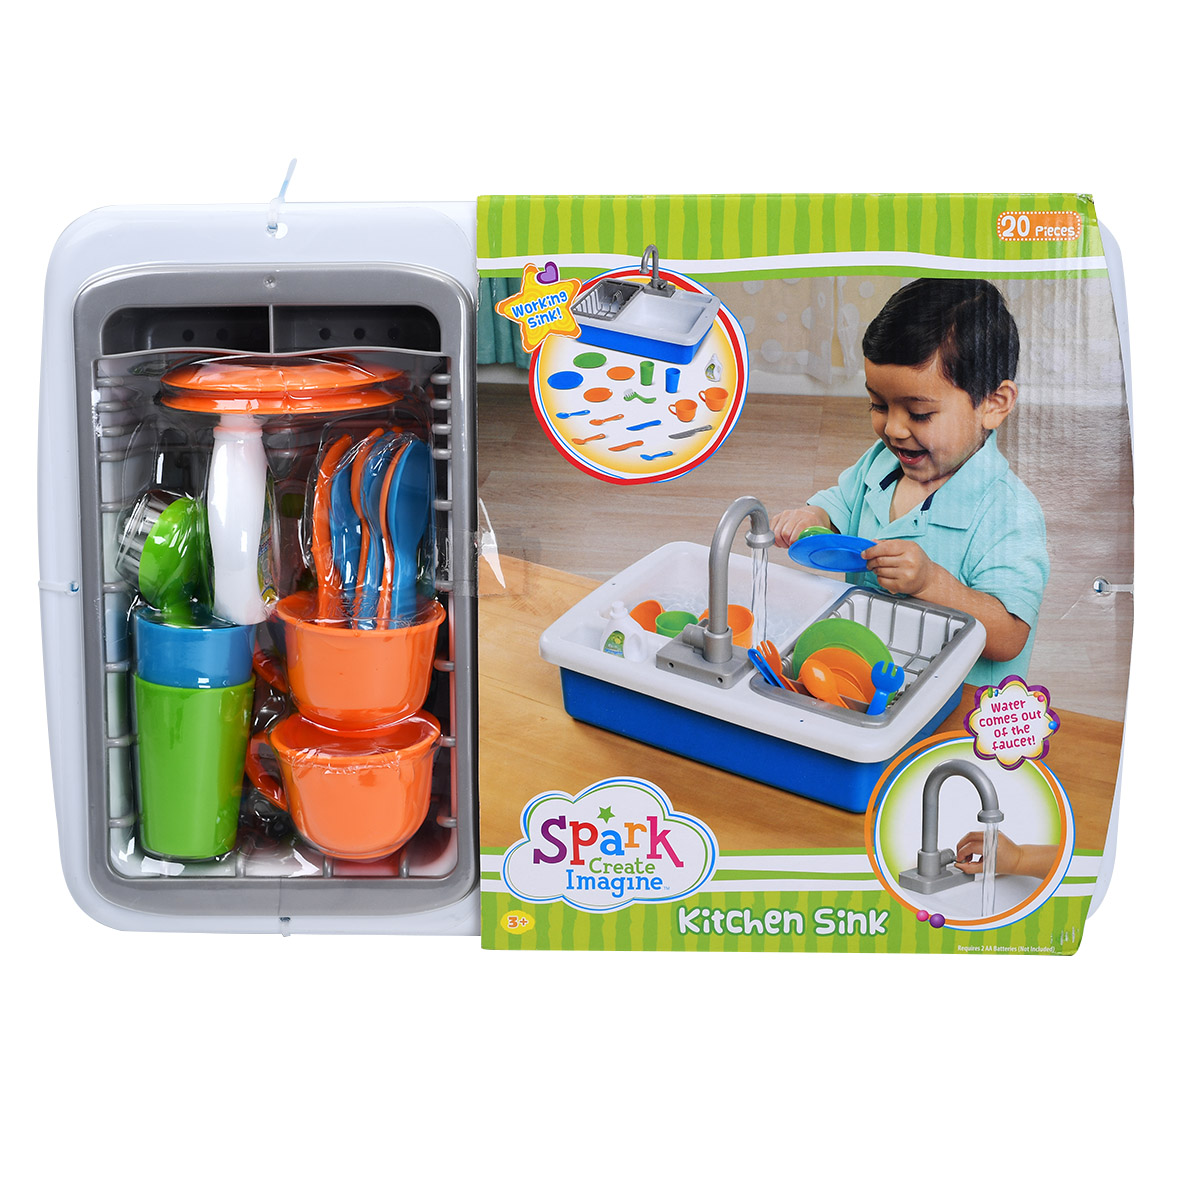 Image Result For Spark Kitchen Sink Playset